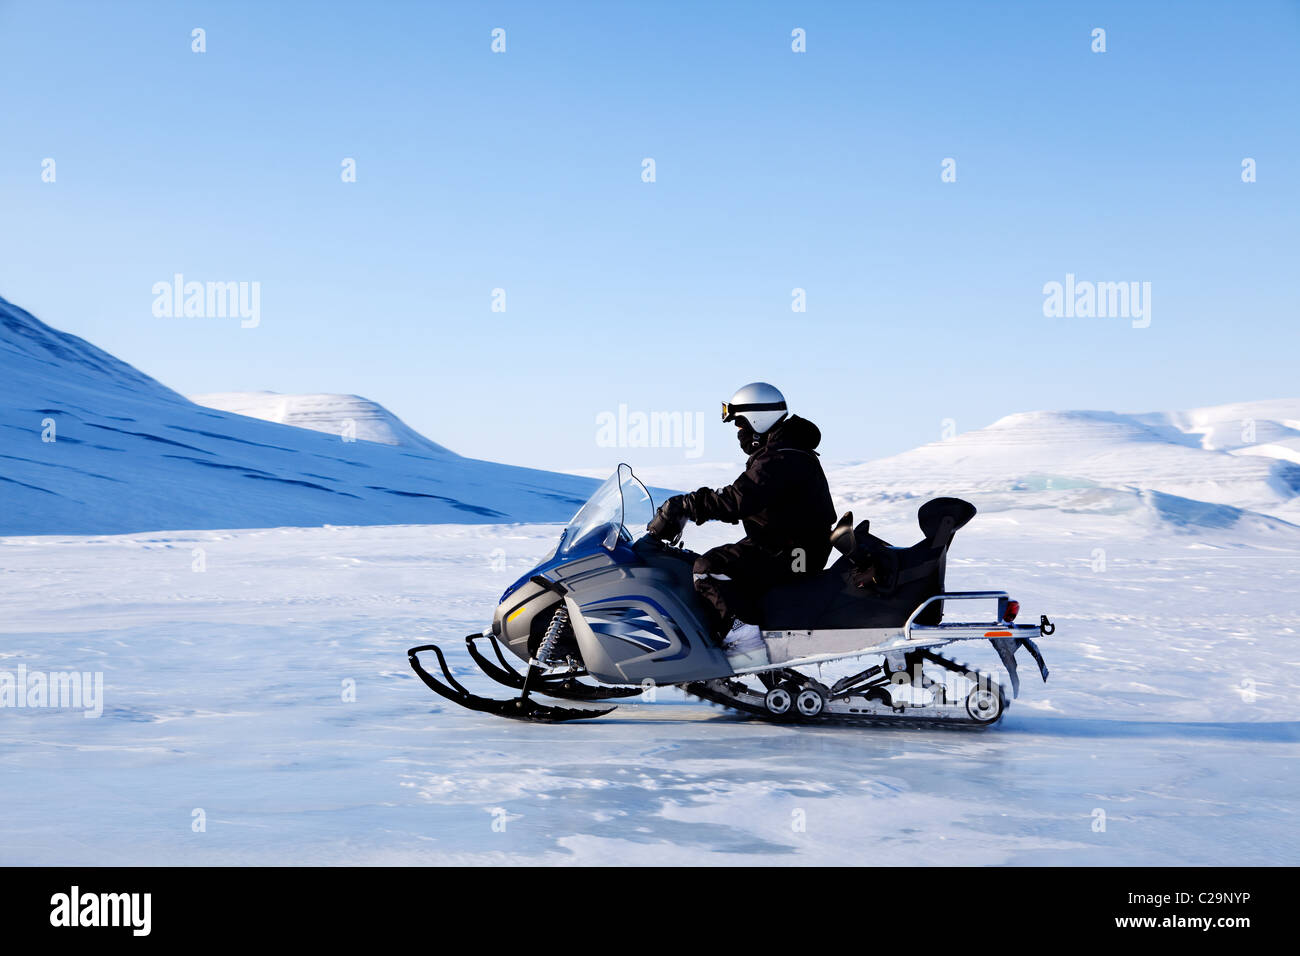 A snowmobile on a beautiful winter mountain landscape - Stock Image